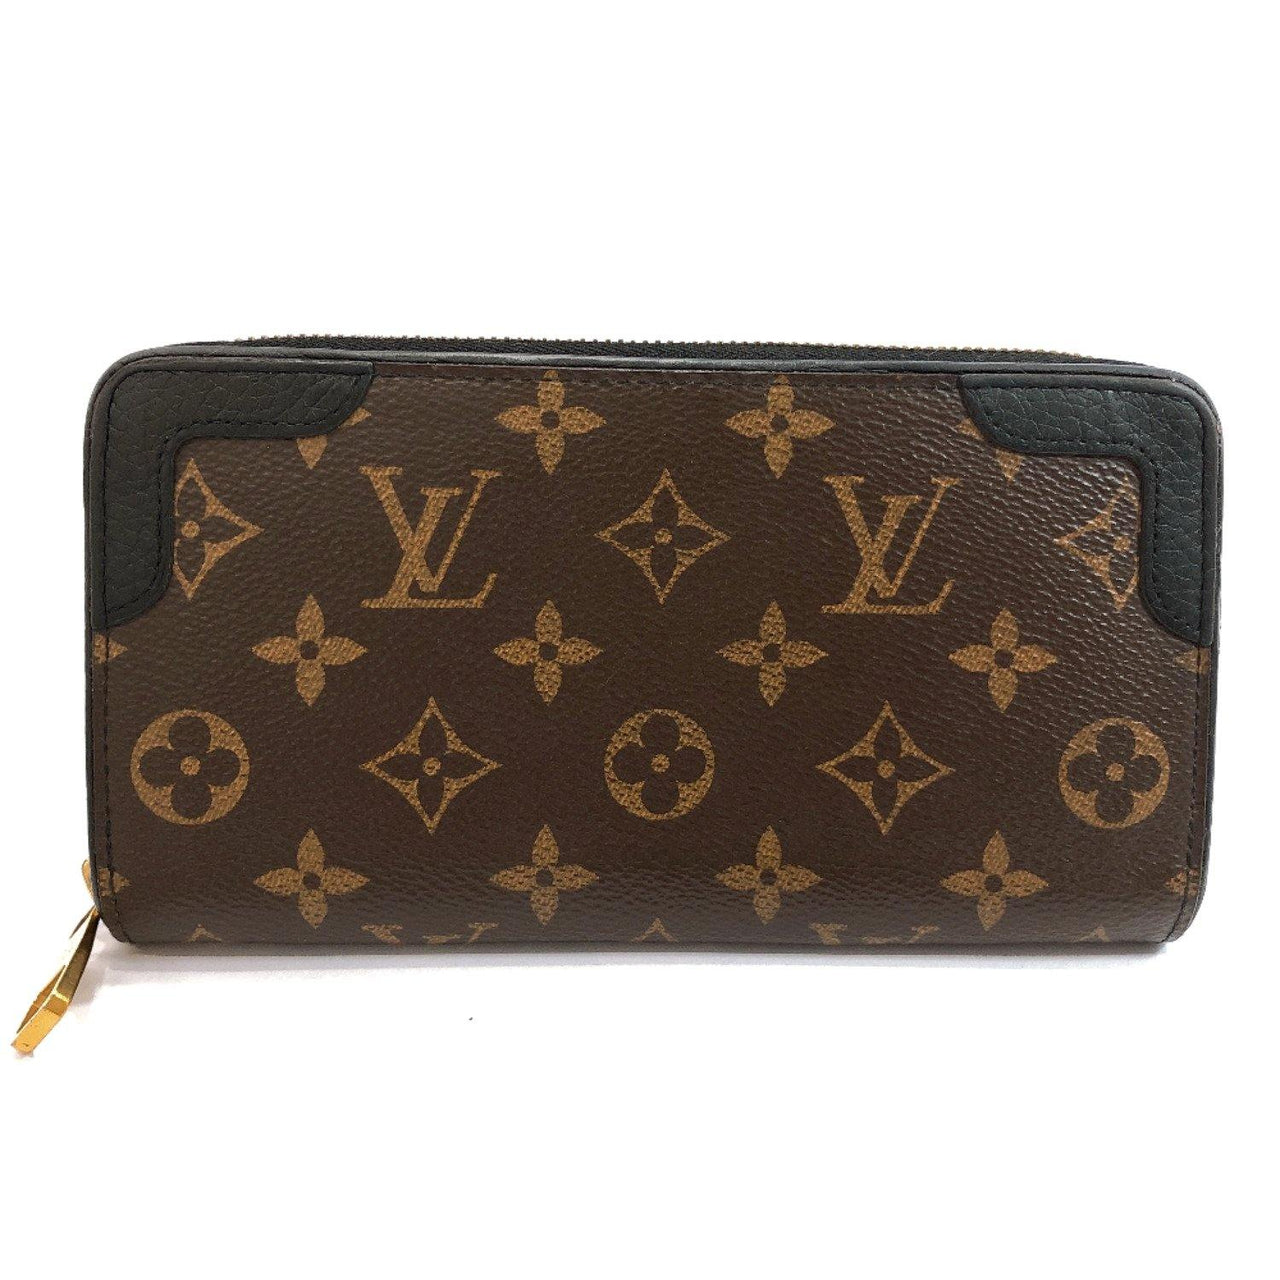 LOUIS VUITTON purse M61855 Zippy Wallet Retiro Monogram canvas Brown unisex Used - JP-BRANDS.com